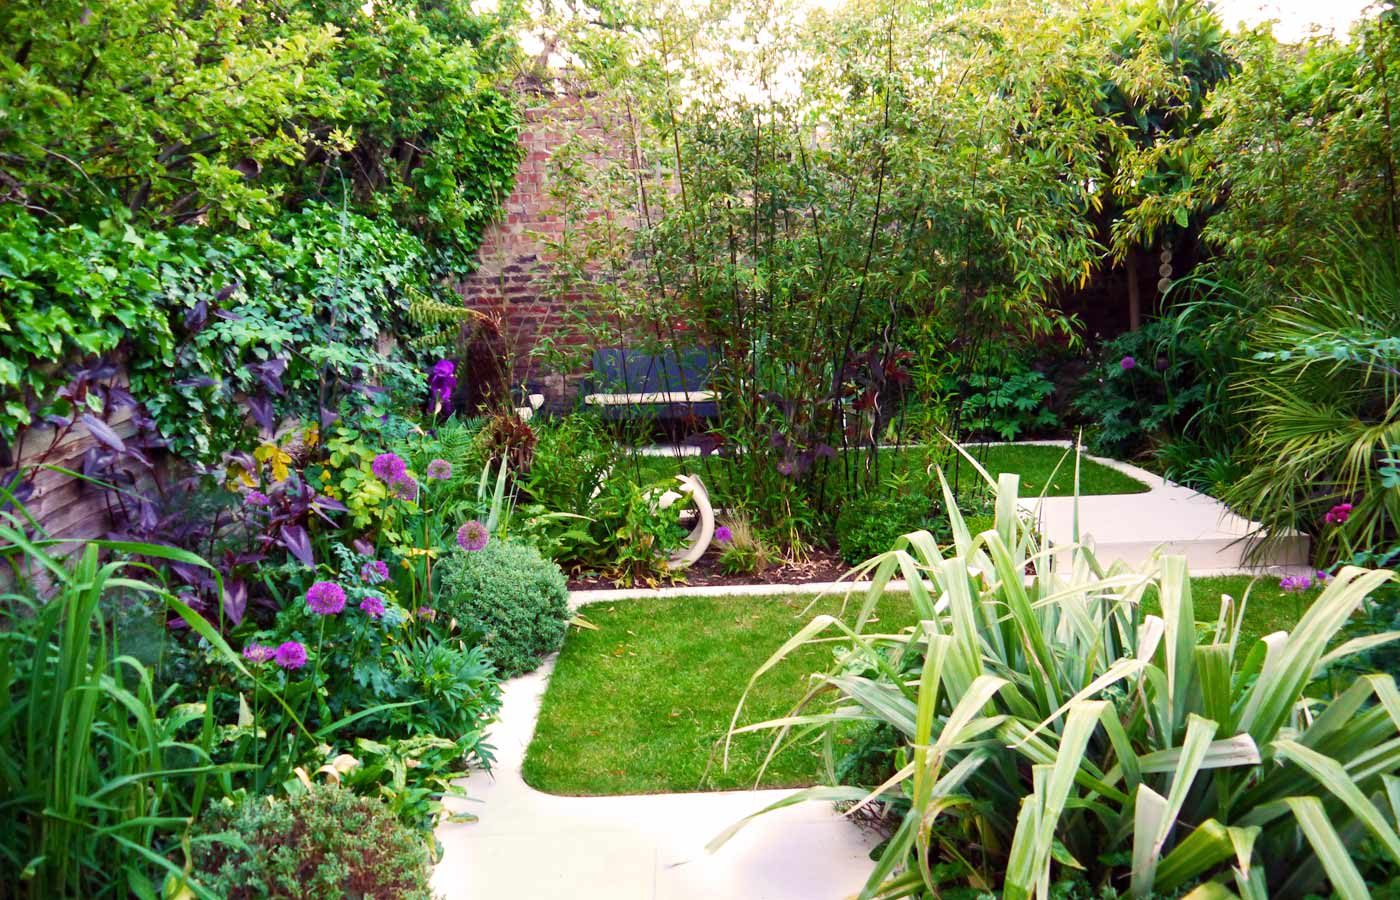 Modern town garden design north facing garden design for Garden planting ideas uk